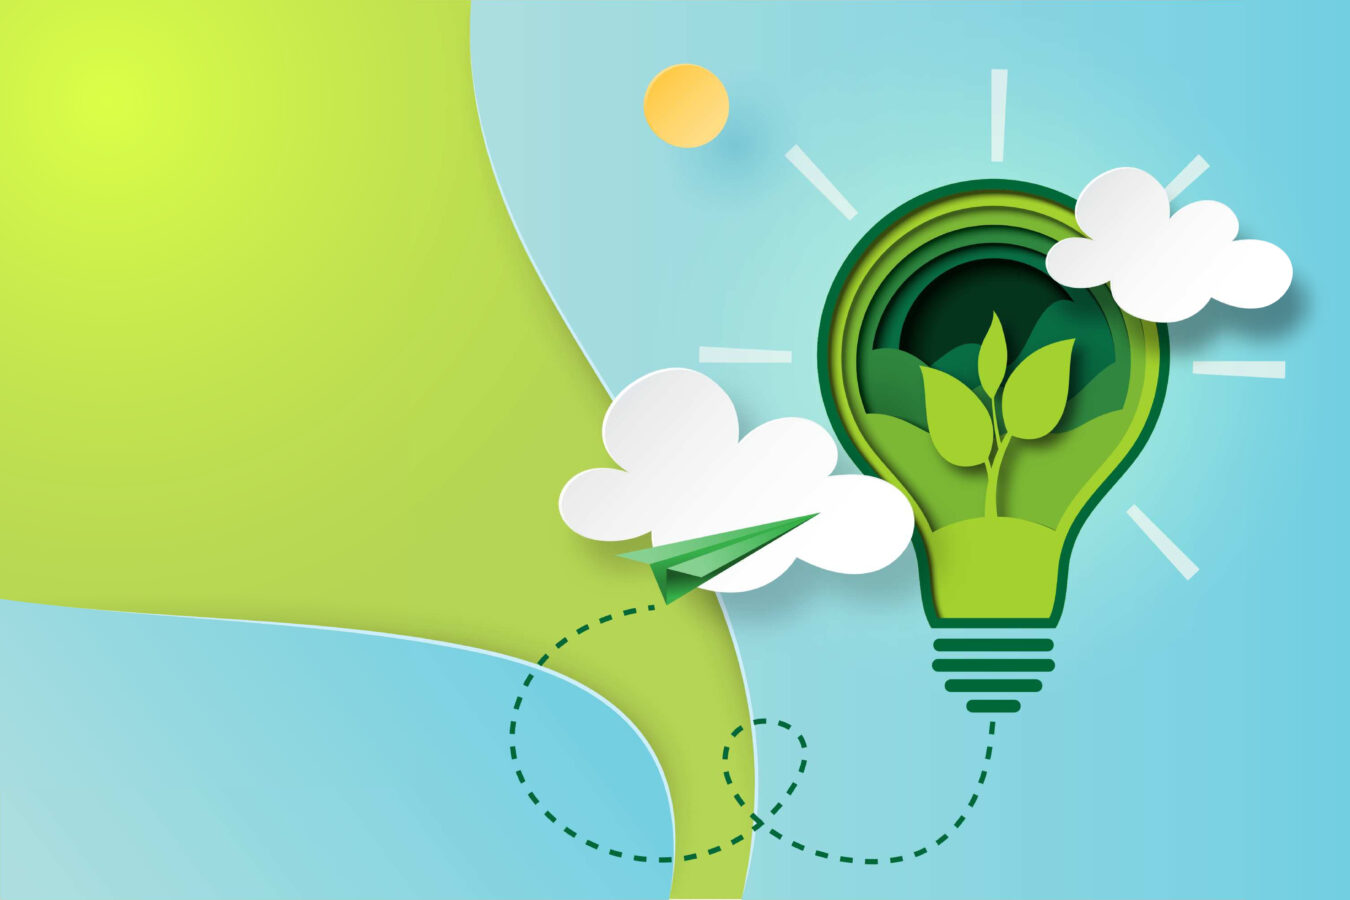 An illustration of a green paper bulb stands for the Spotify sustainability report.